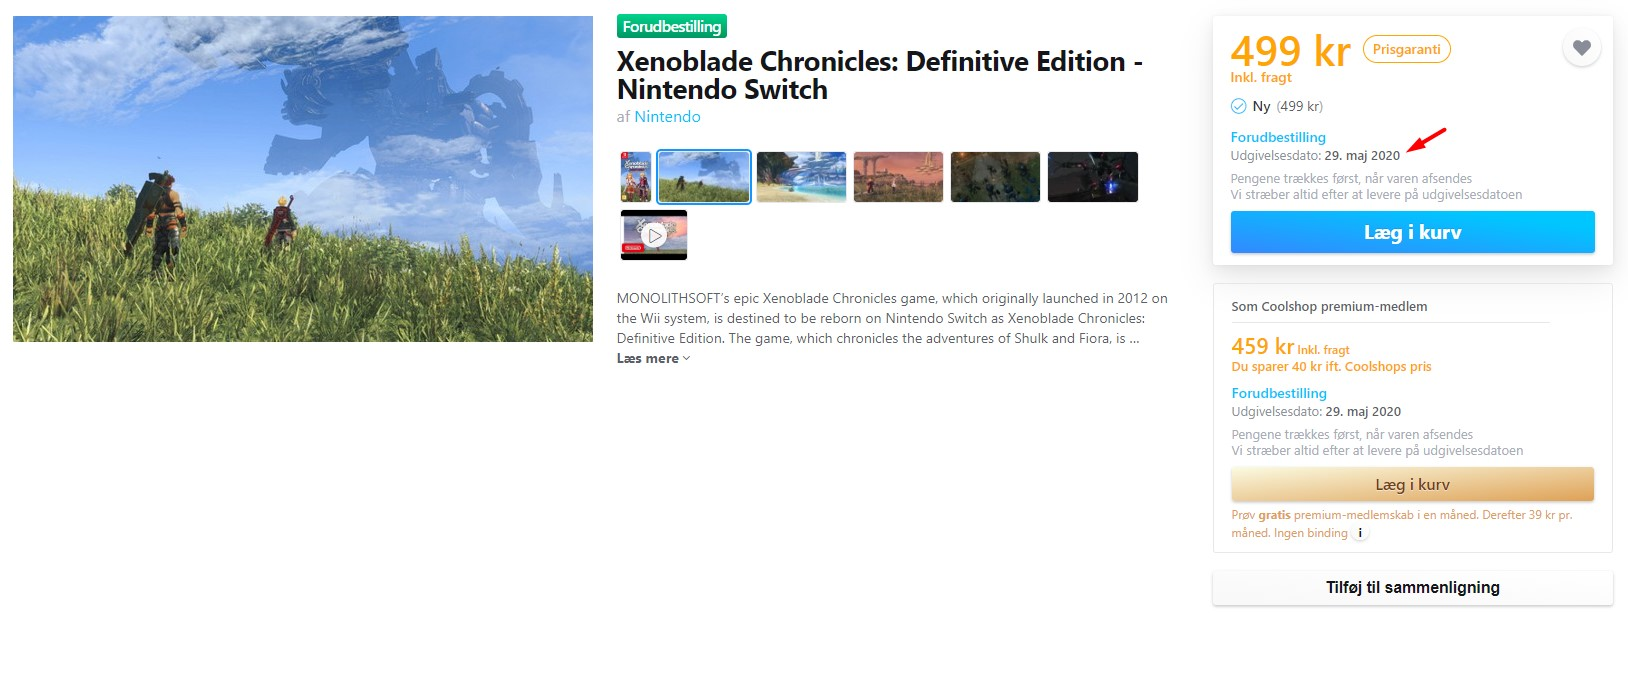 Xenoblade Chronicles: Definitive Edition Listing